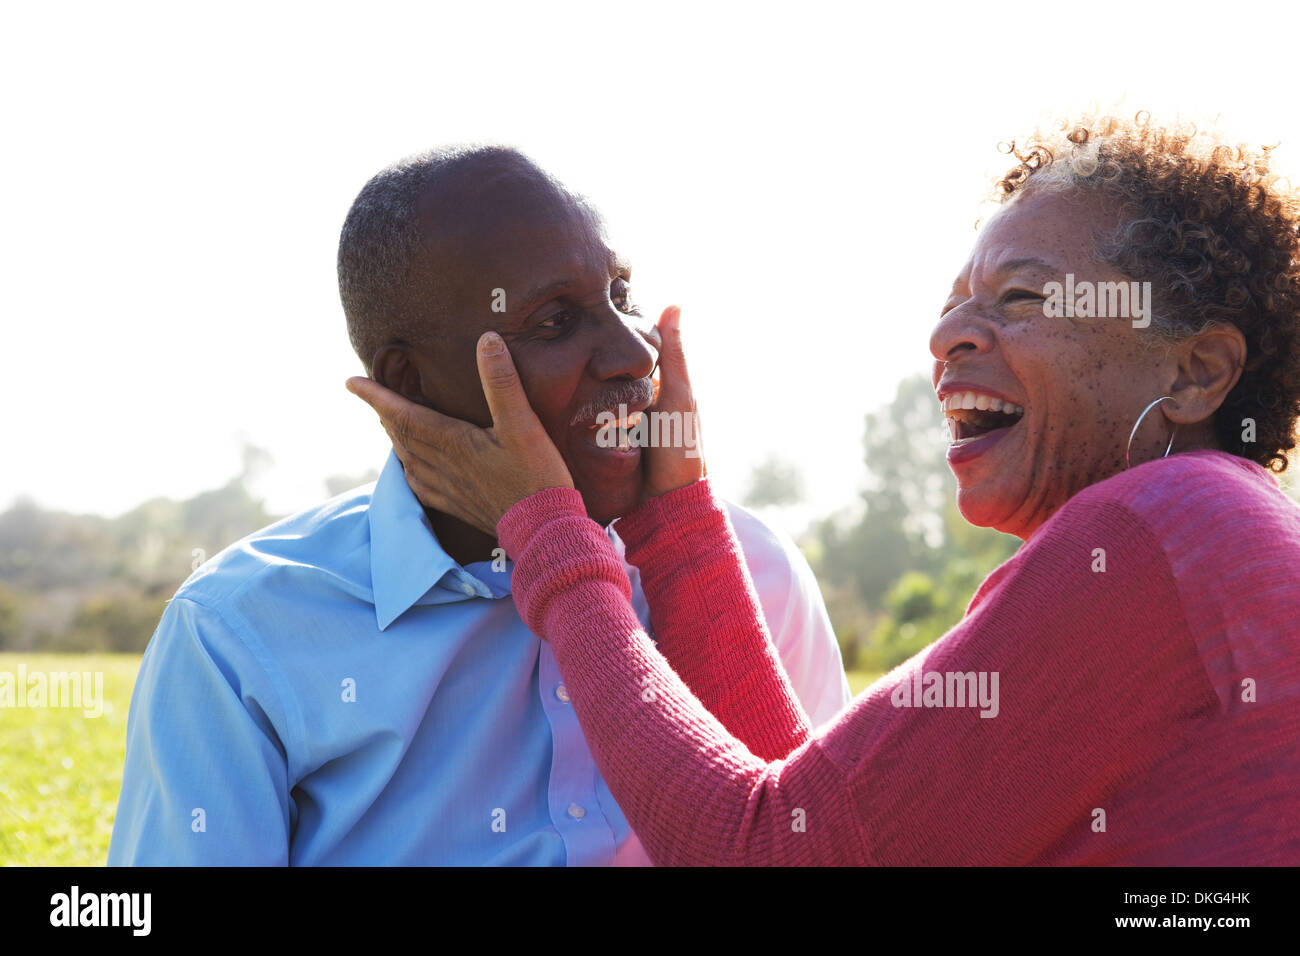 Portrait of senior couple in park, woman touching man's face - Stock Image